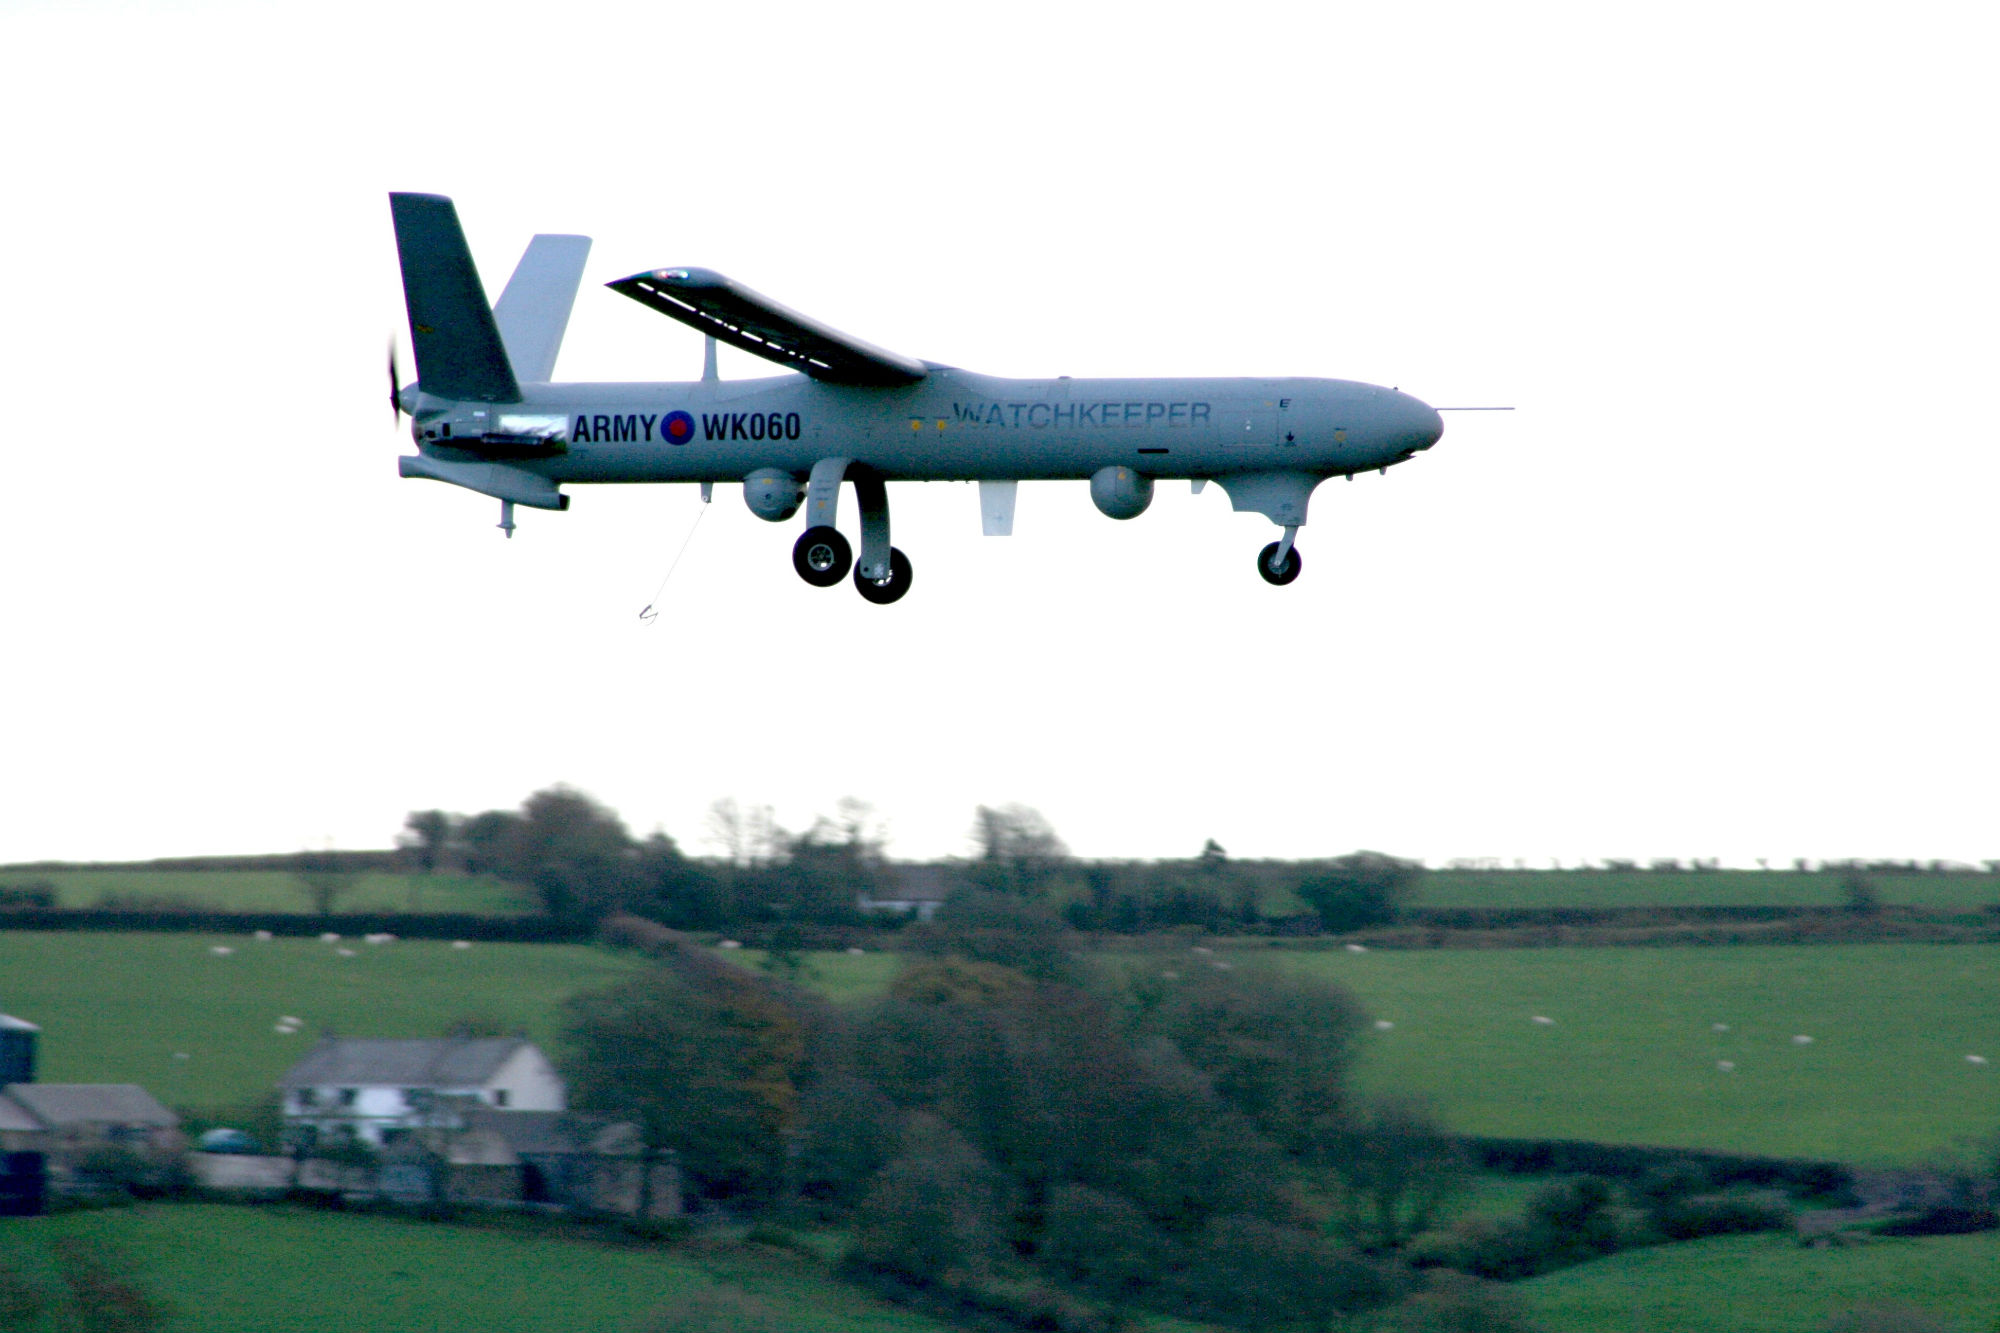 hermes drone with The Drone Index Thales Watchkeeper on 295470 2 besides Heron Tp Eitan in addition Elbit Hermes 450 740 israel Israeli Air Force 174269 large besides Ka 52 Alligator Attack Helicopter Infographics as well Id 635283.